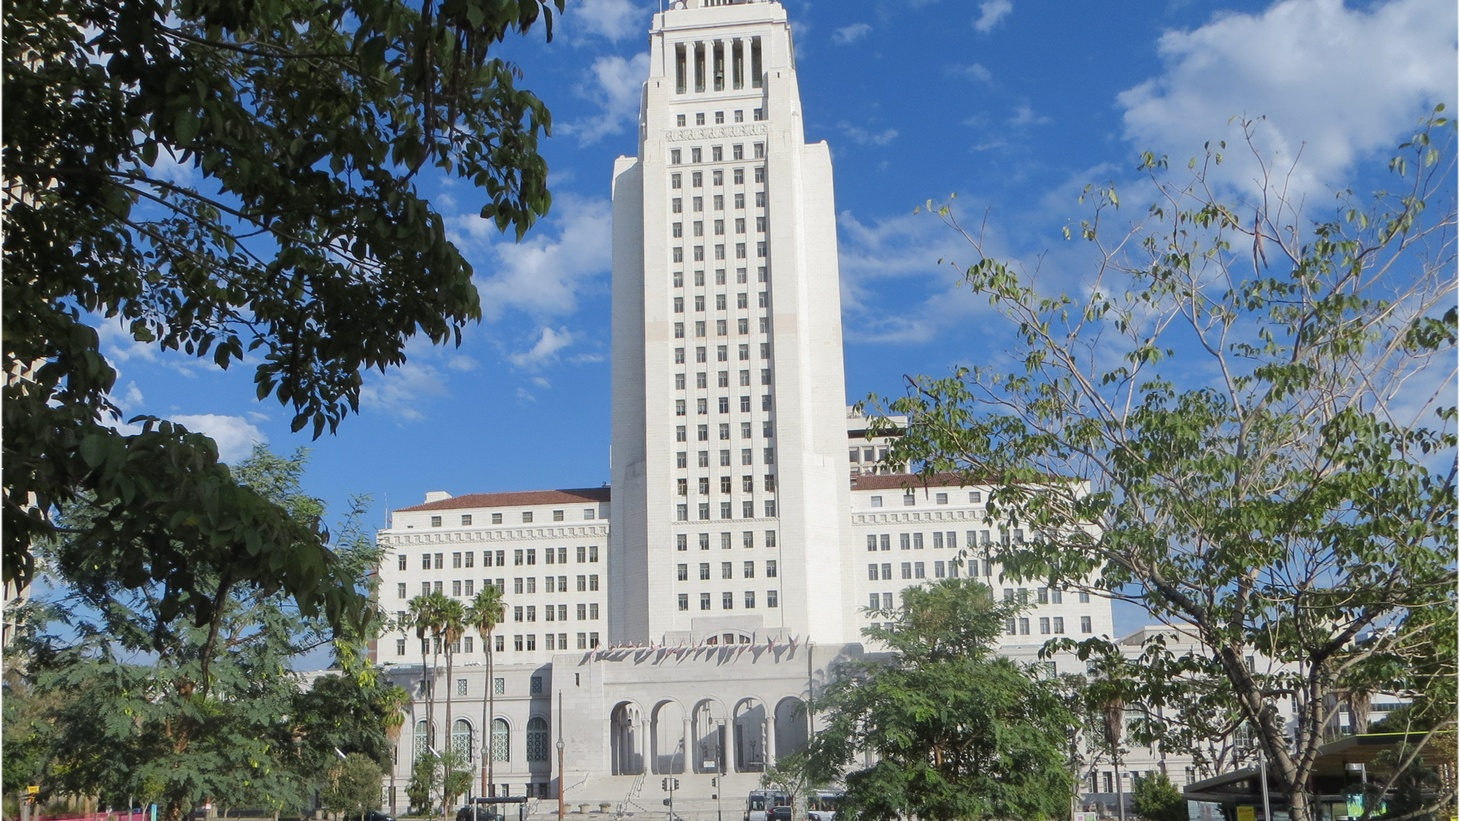 Four former LA County social workers will go to trial on child abuse and other charges in the death of an 8-year-old boy. Also, two California state senators introduced new legislation that would end incarceration for kids under 12 and ban life sentences without parole for those under 18.